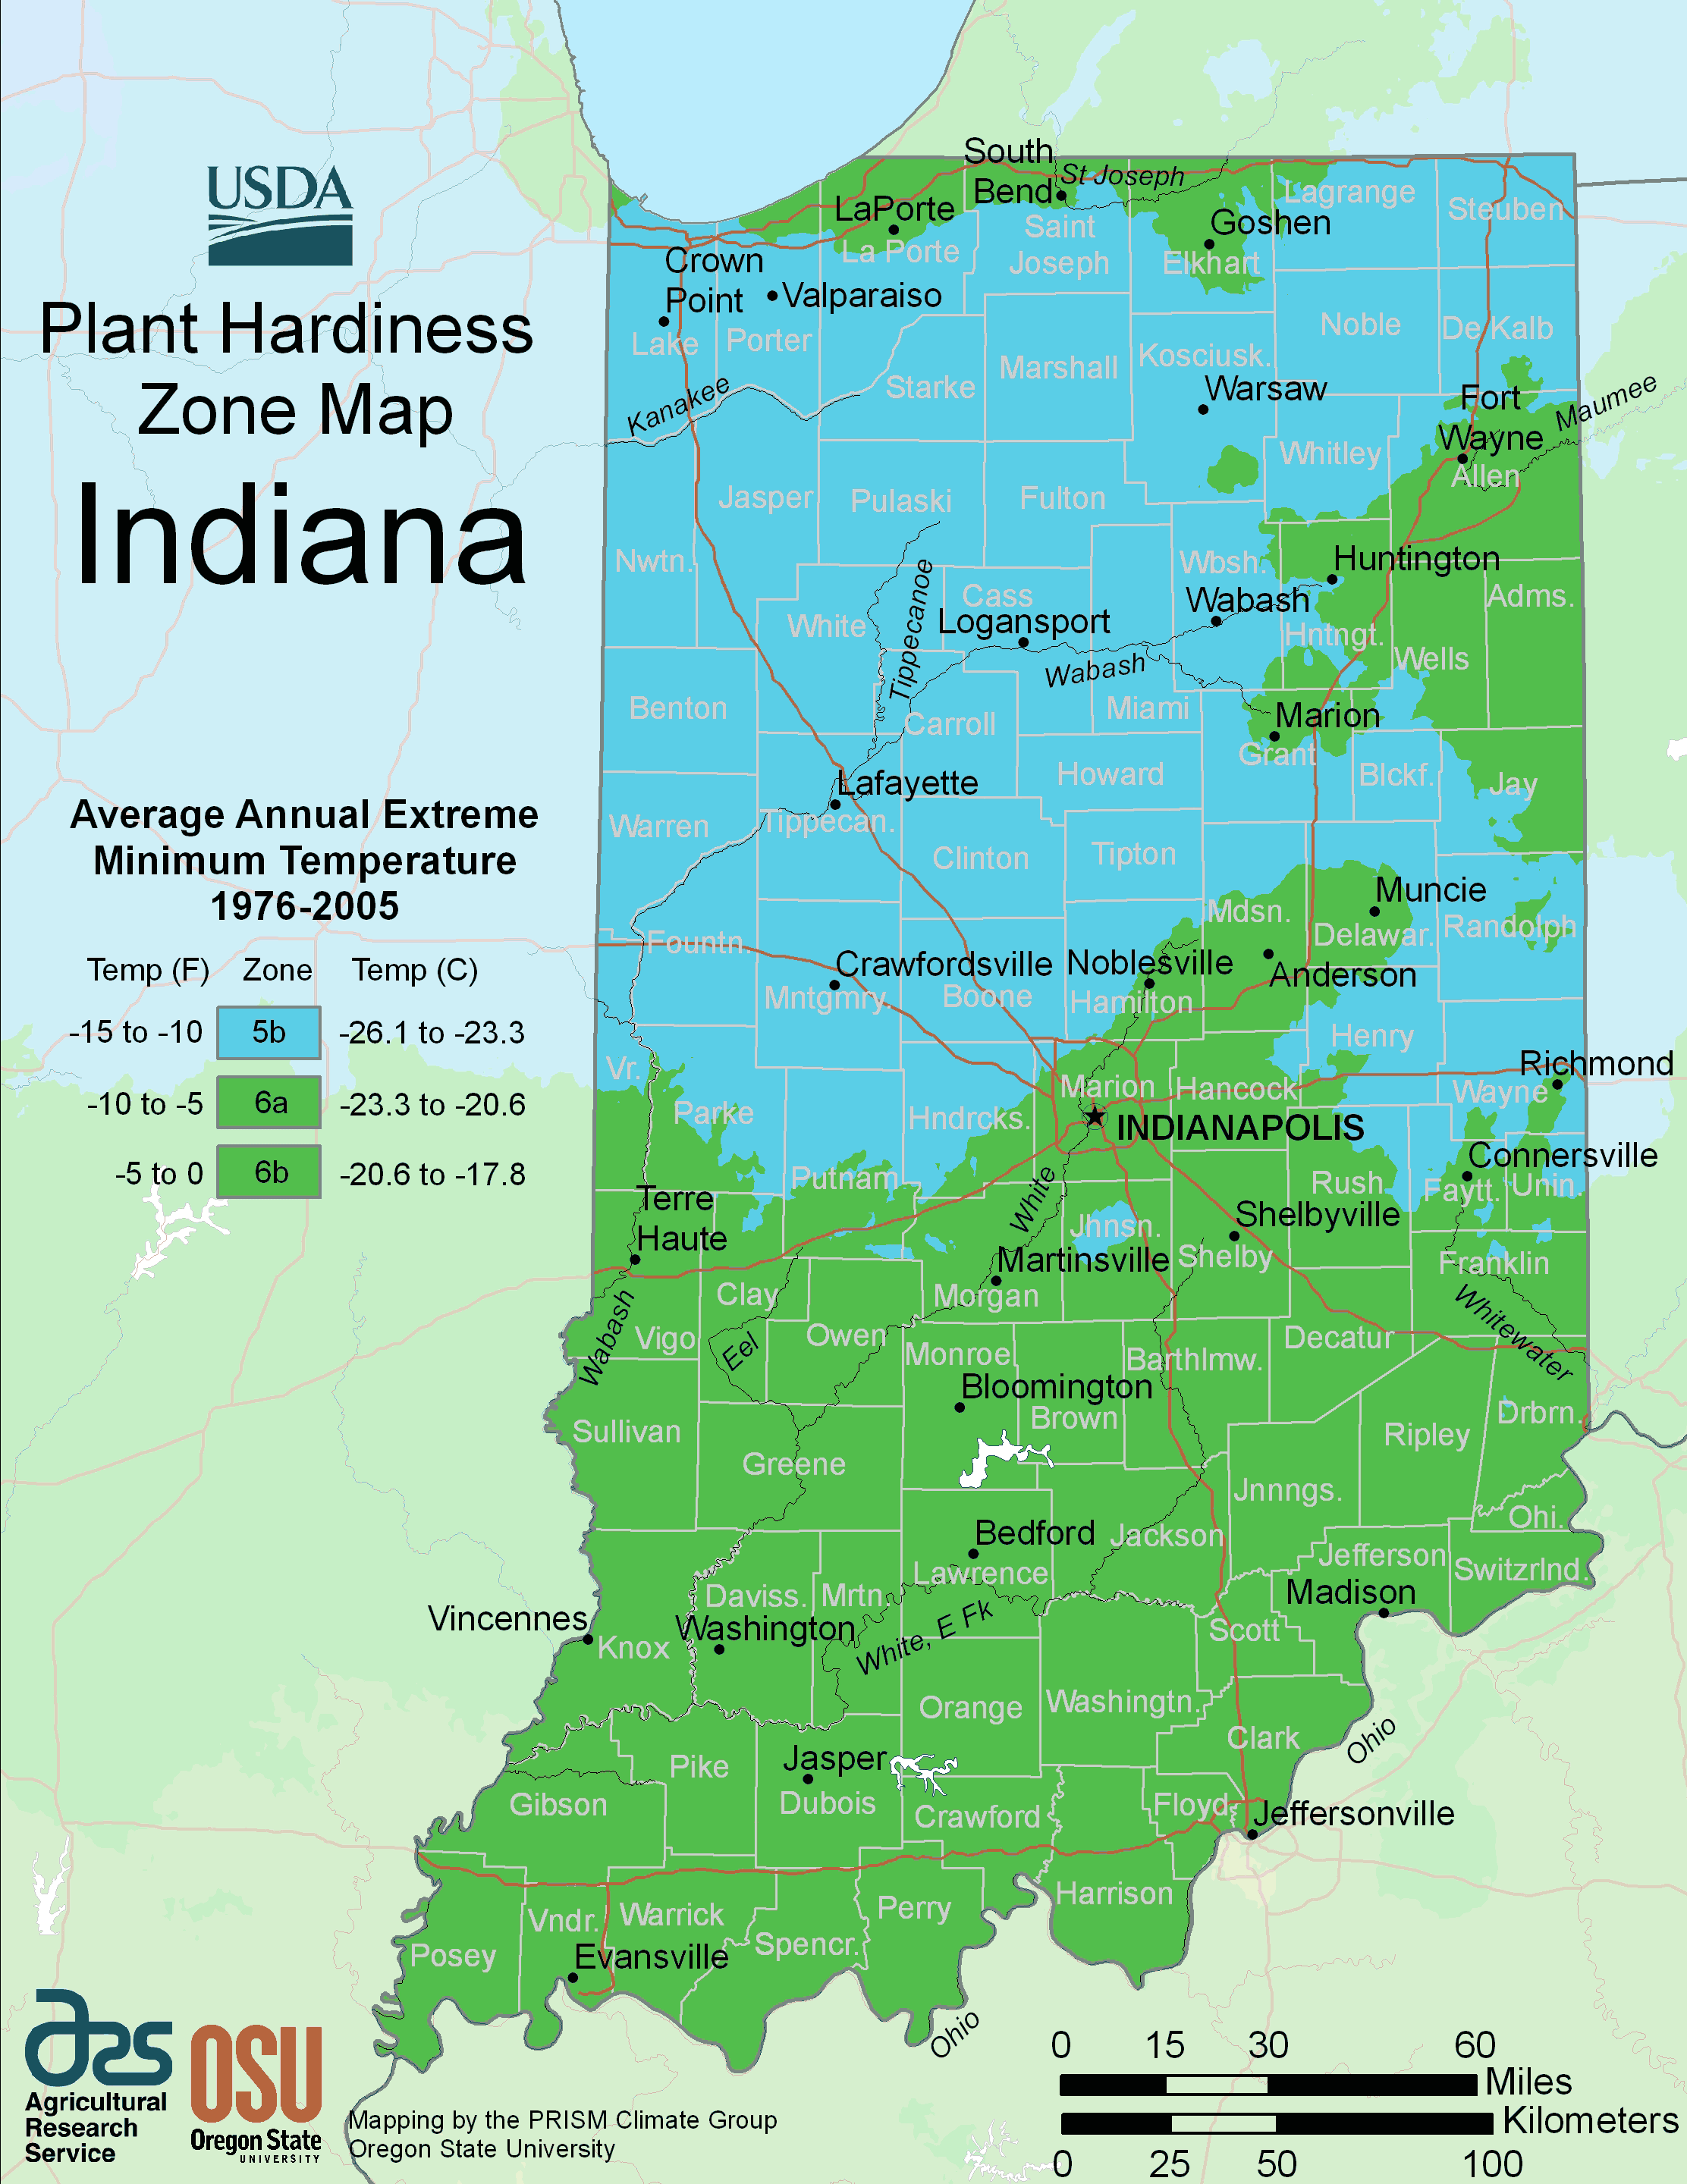 Indiana Plant Hardiness Zone Map • Mapsof.net on transportation in indiana, butterflies in indiana, star in indiana, animals in indiana, weather in indiana, zip code map in indiana, usa map in miami, usa map in new jersey, dinosaurs in indiana, texas in indiana, home in indiana,